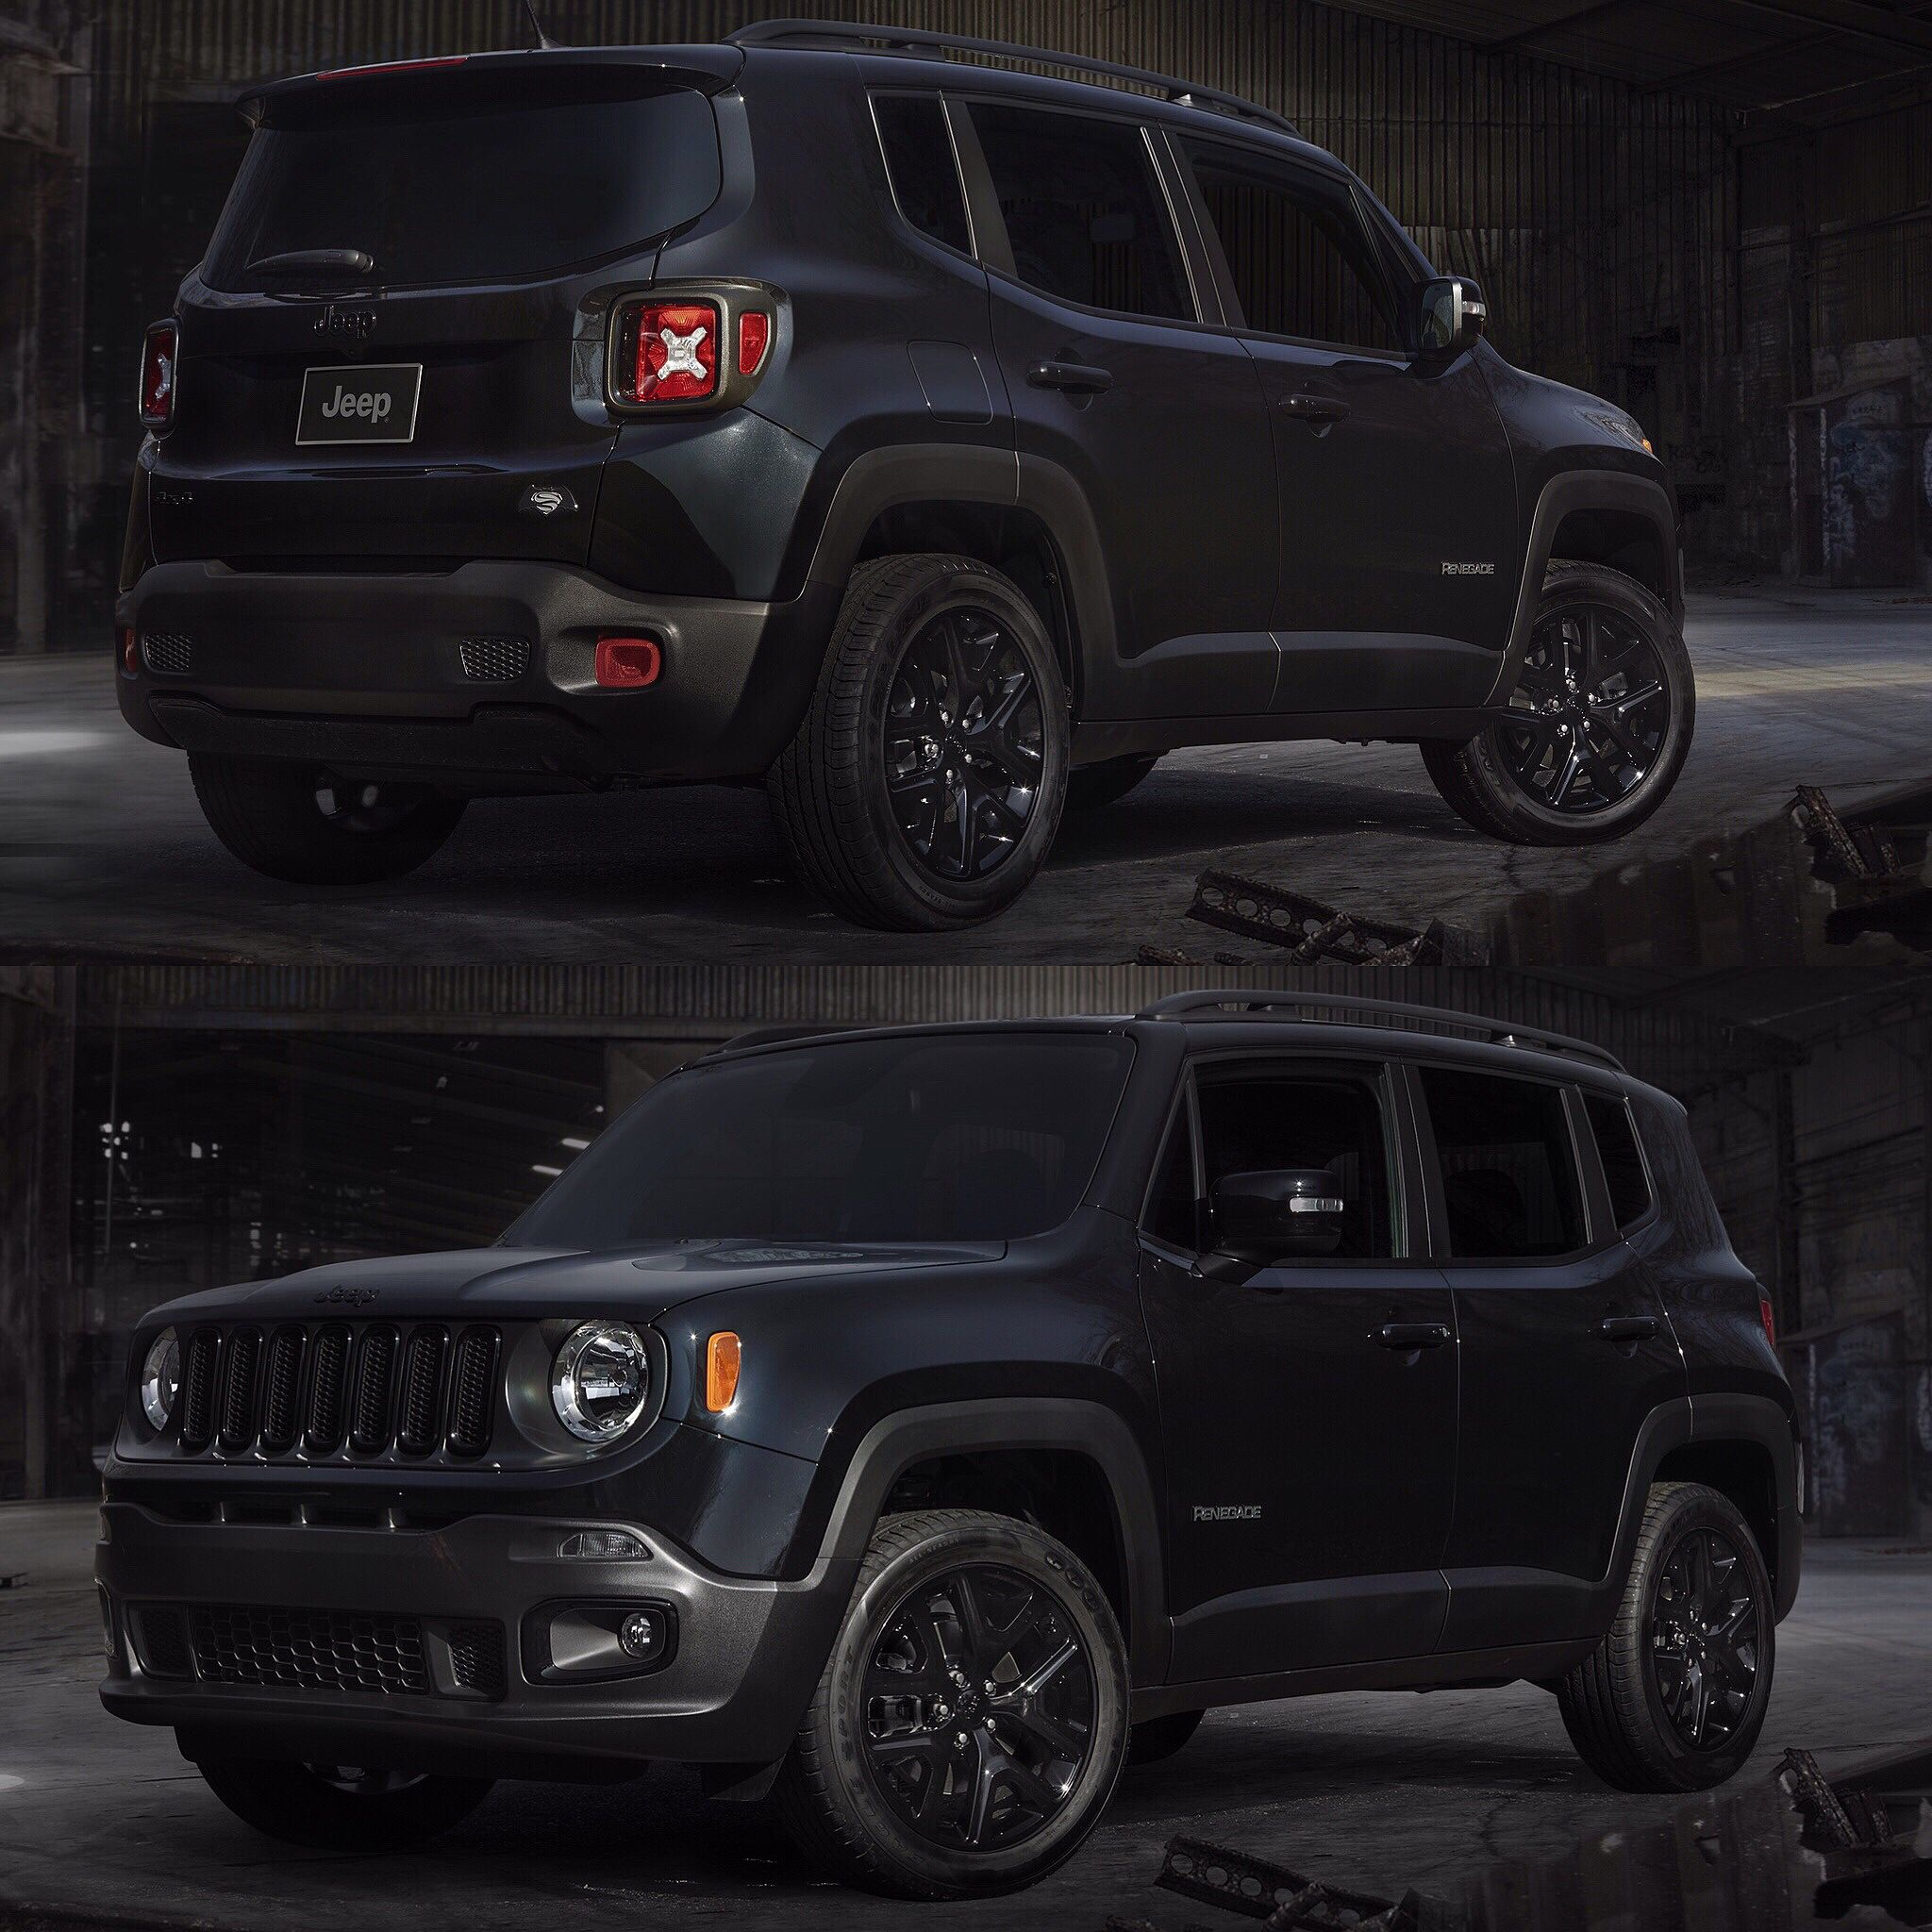 2016 Jeep Renegade Dawn Of Justice Special Edition Www Thompsonschryslerdodgejeepram Com Jeep Renegade Jeep Jeep Renegade Trailhawk